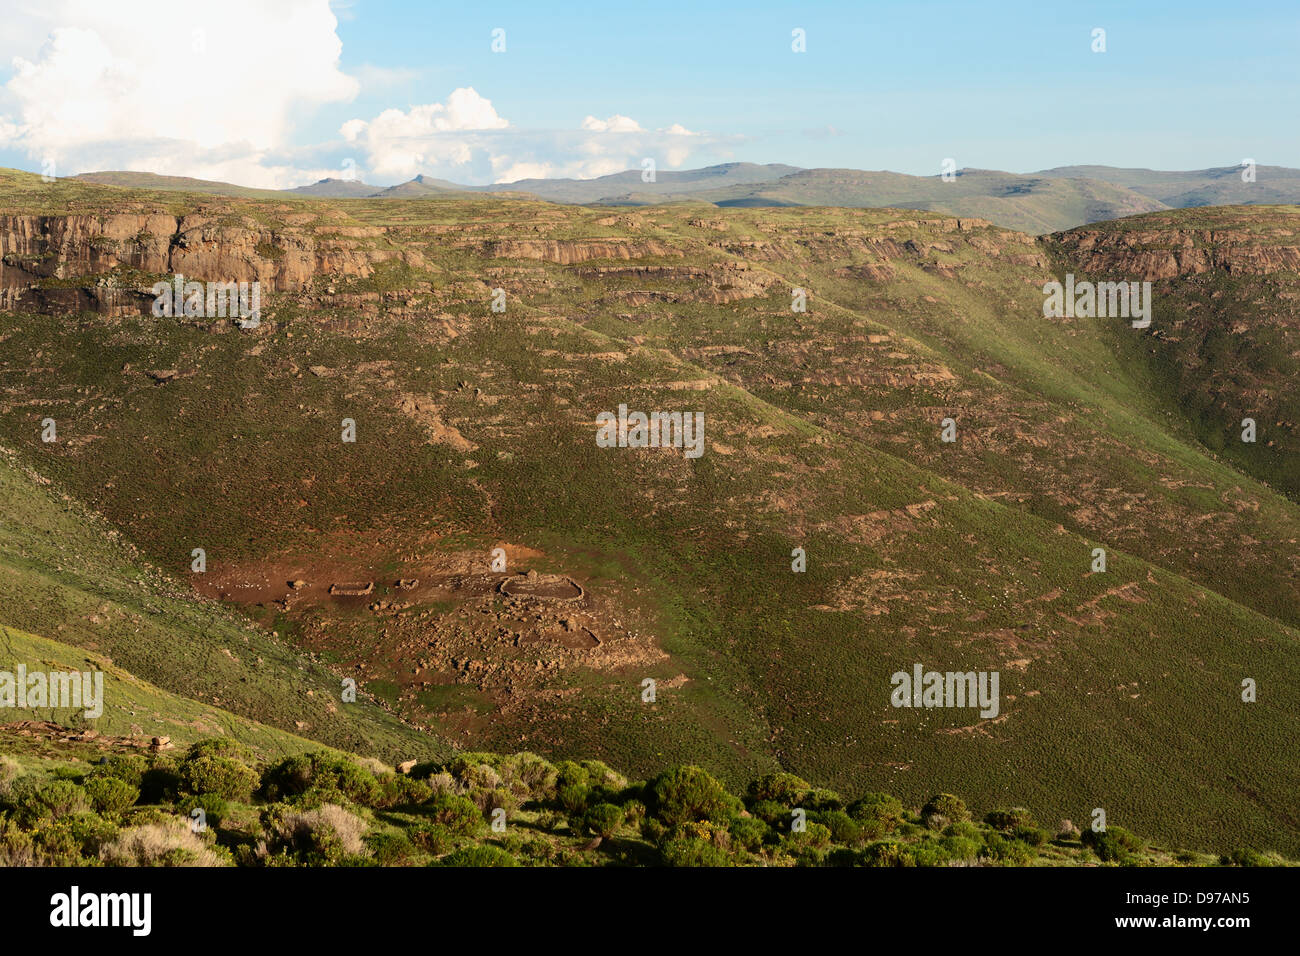 Remote rural subsistence farm on steep mountain slopes in Lesotho, Africa - Stock Image